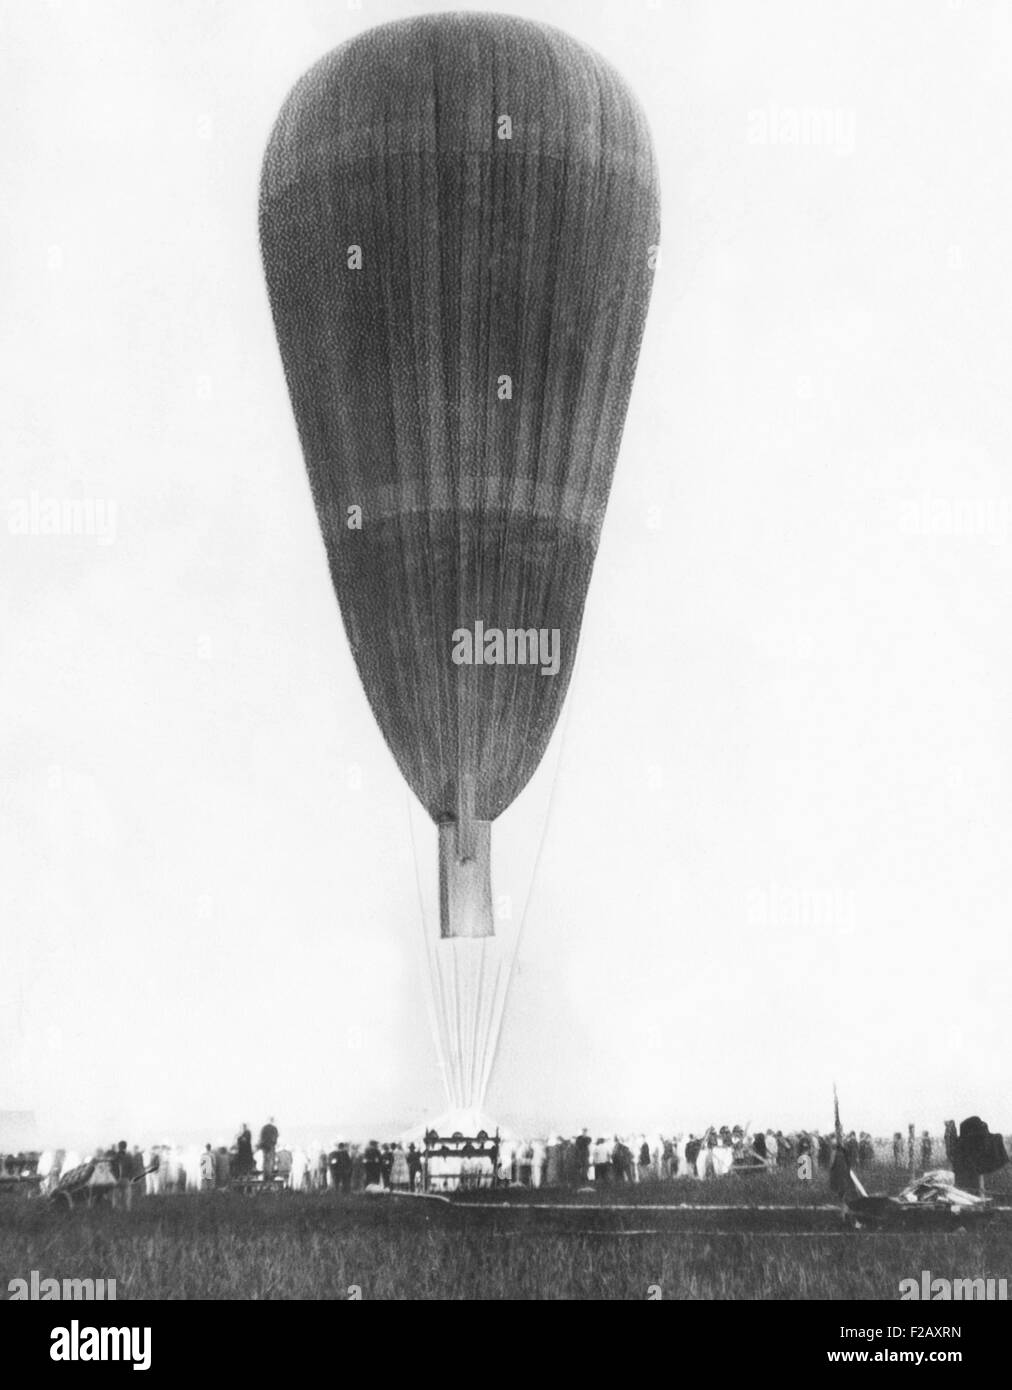 Hydrogen-filled balloon that lifted Auguste Piccard and Max Cosyns to the height of 53,153 feet. August 18, 1932, - Stock Image